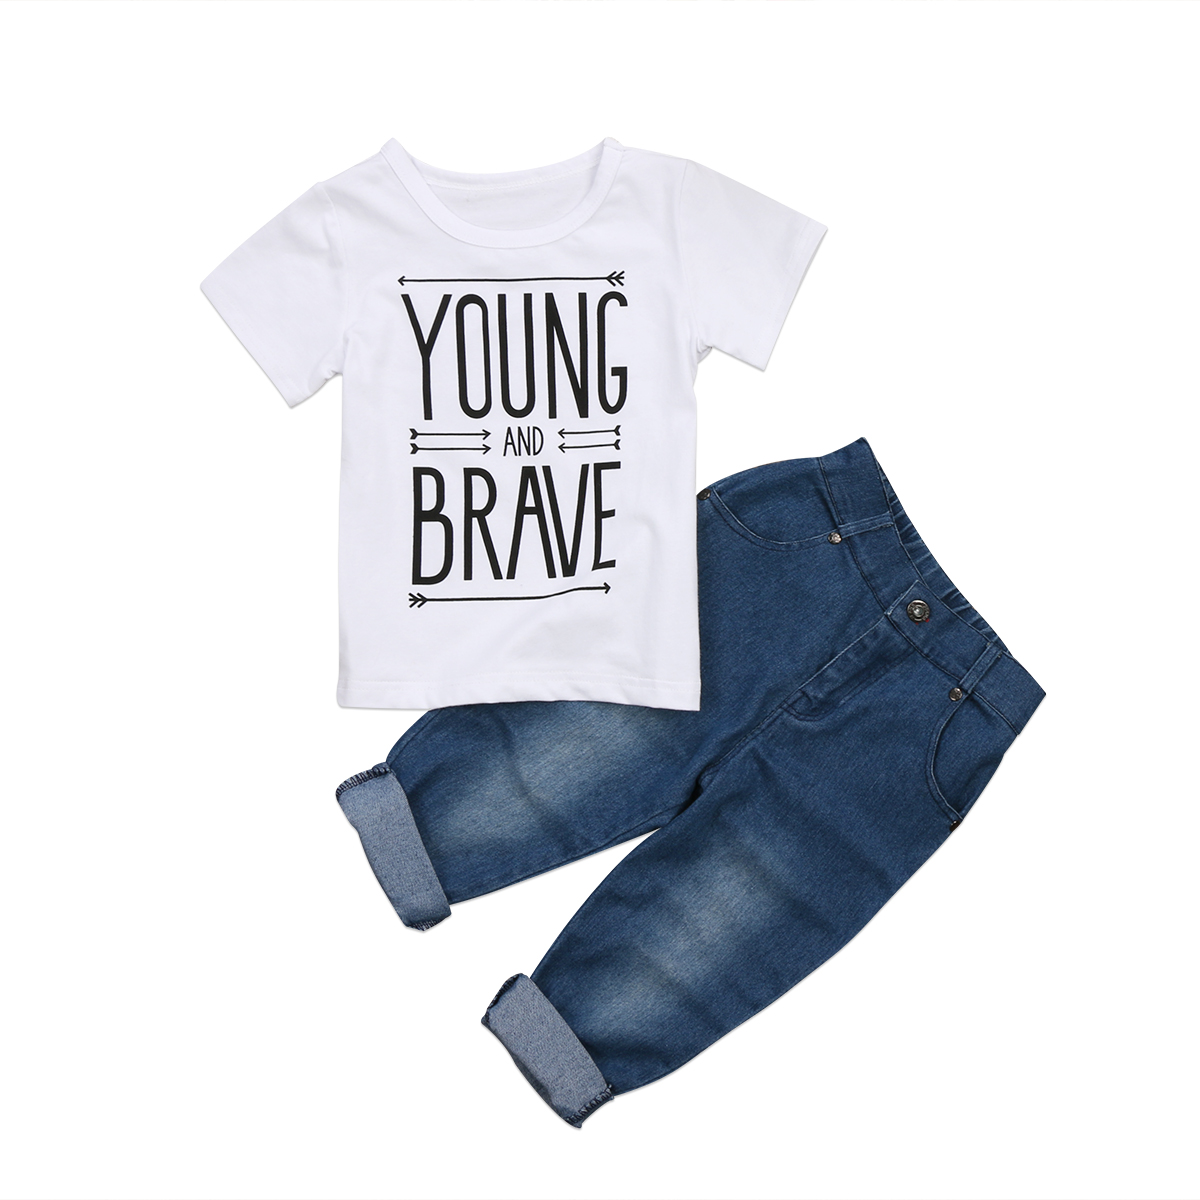 Boys T Shirts Tee Tops Short Sleeve Cotton Denim Pants Outfit Clothing Set Newborn Toddler Kid Baby Boy Clothes Sets 2017 newborn baby boy clothes summer short sleeve mama s boy cotton t shirt tops pant 2pcs outfit toddler kids clothing set